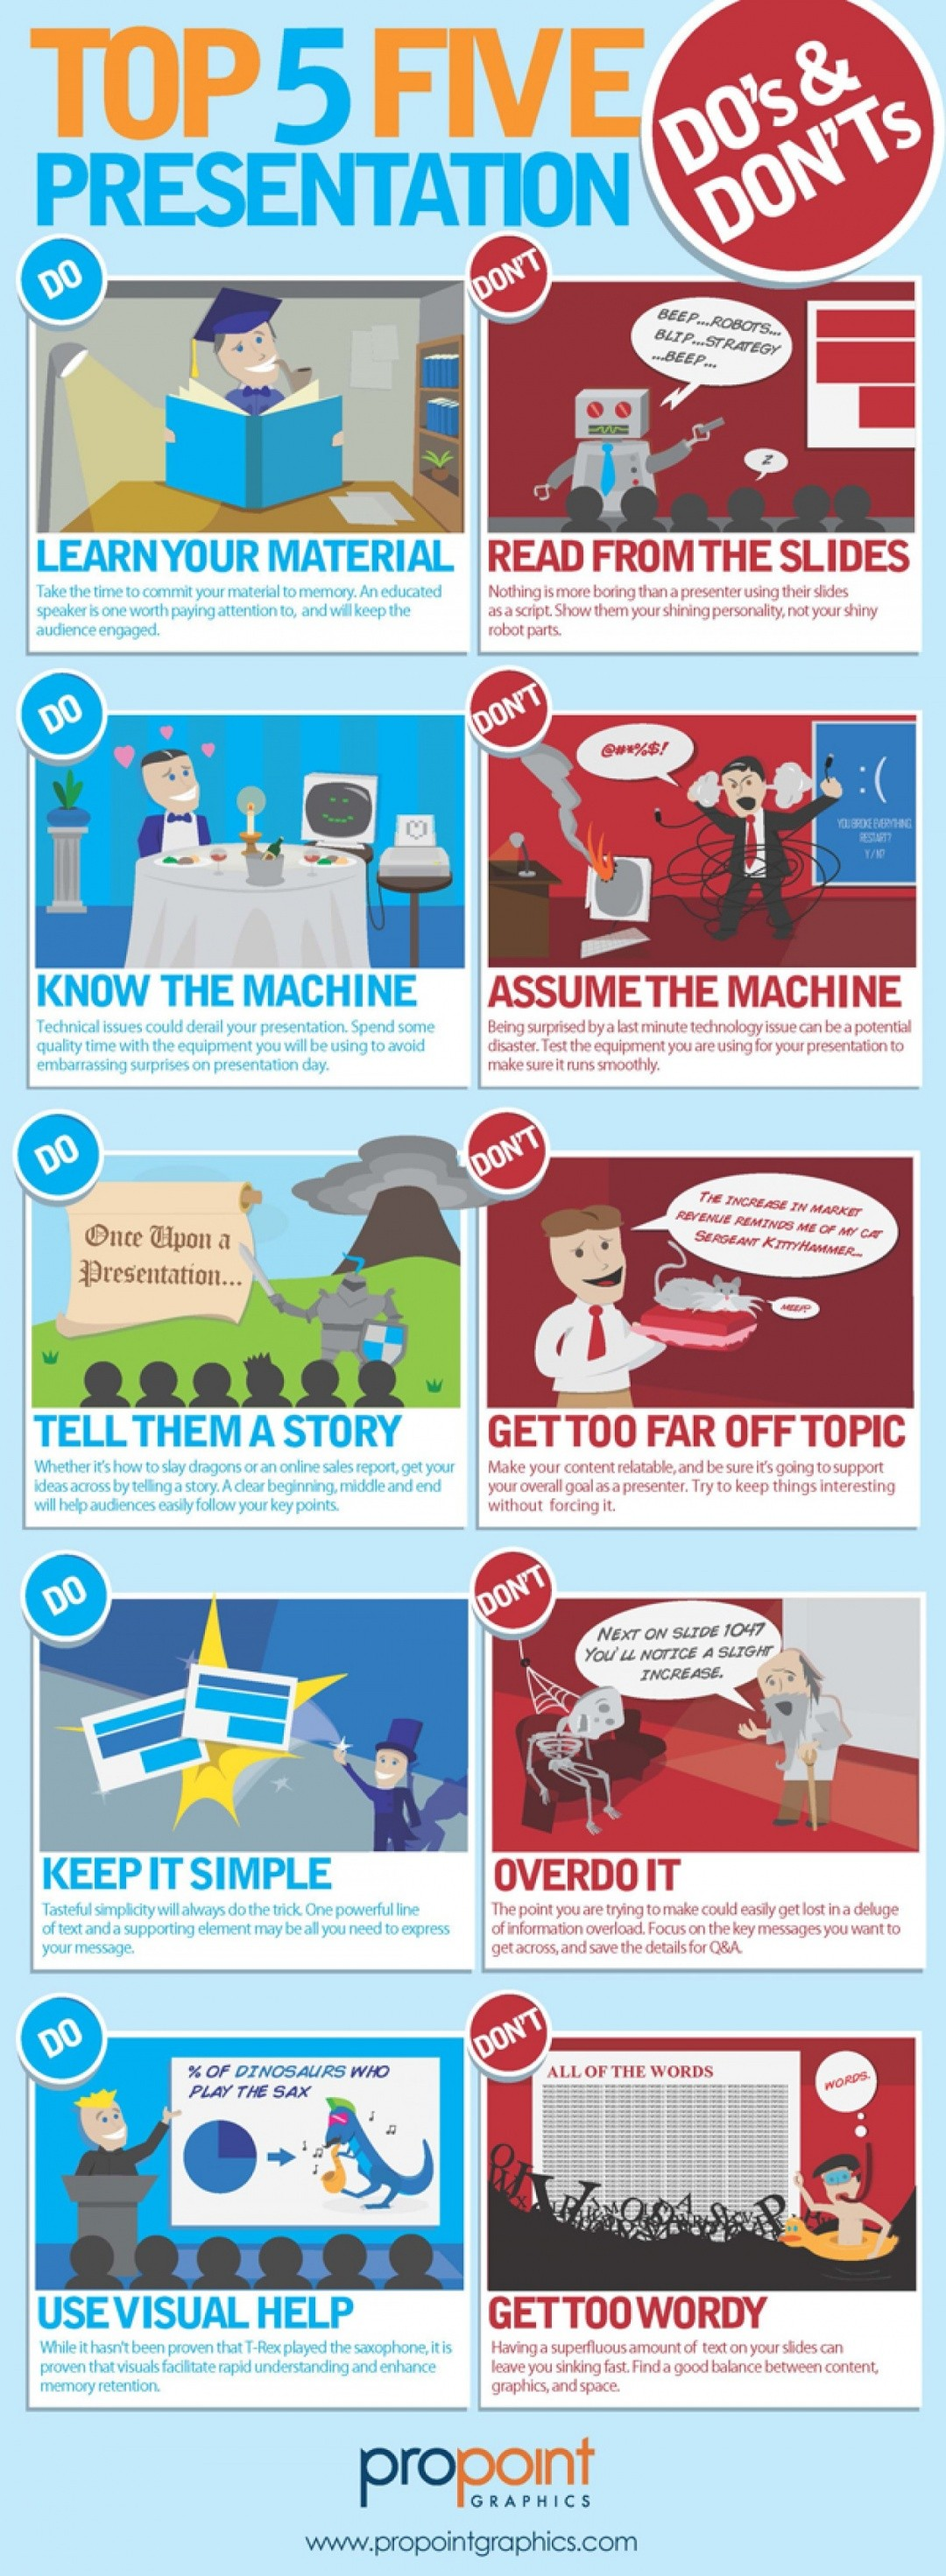 Top 5 Presentation Do's & Dont's